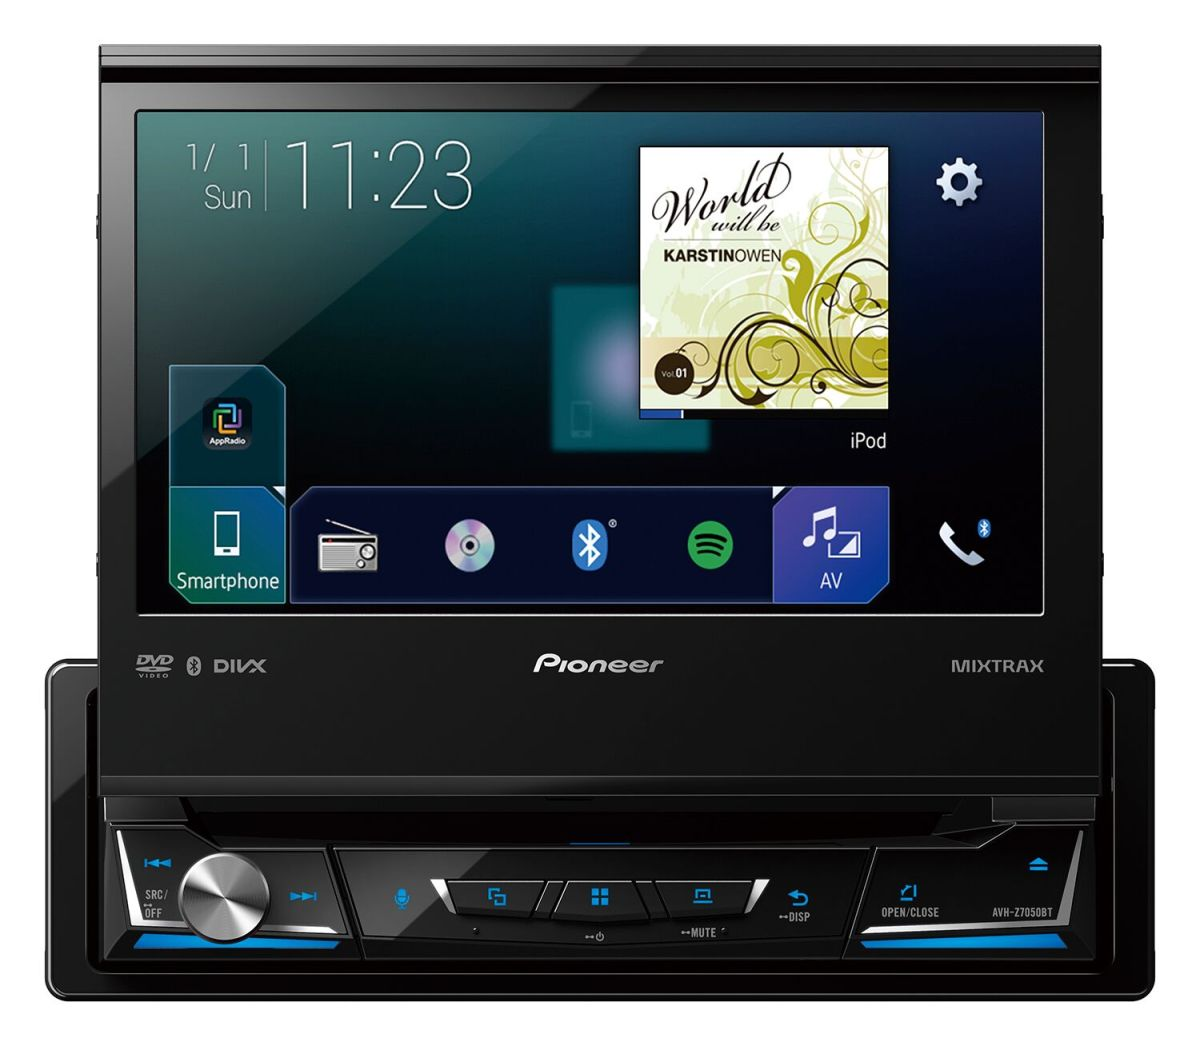 Pioneer announces new multimedia receivers with Apple CarPlay and Android Auto support